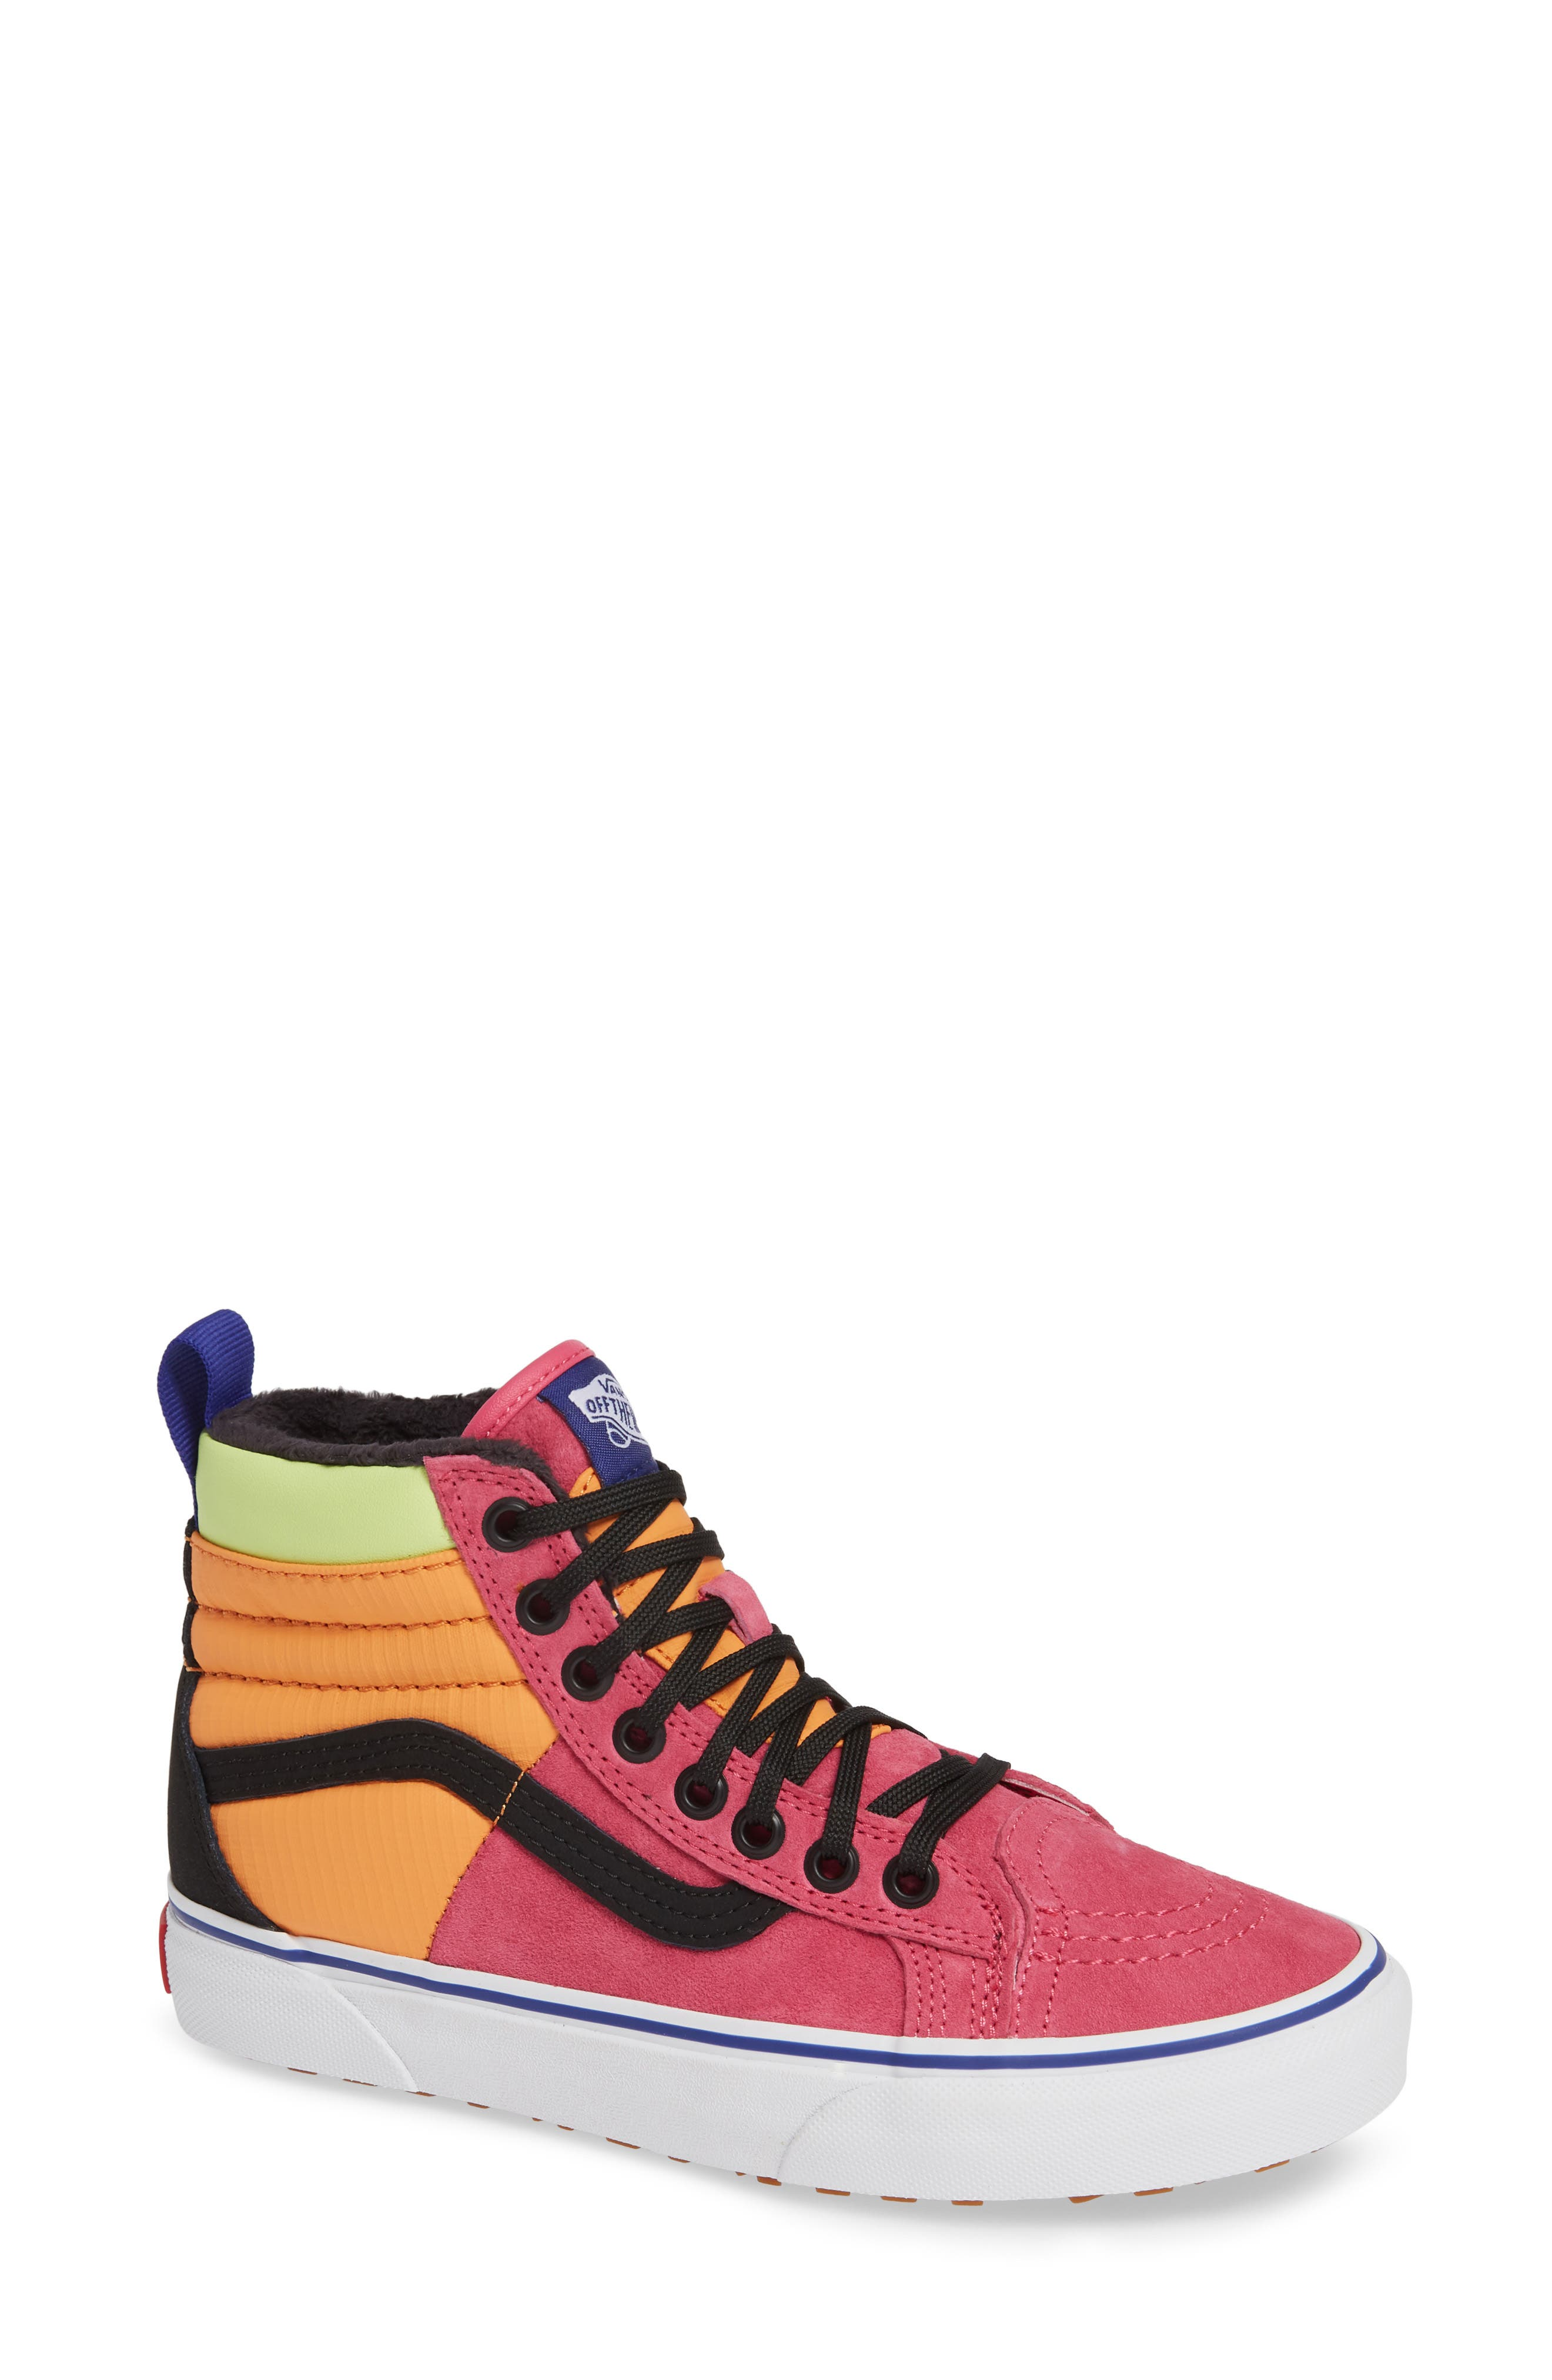 VANS Sk8-Hi 46 MTE DX Sneaker, Main, color, PINK YARROW/ TANGERINE/ BLACK